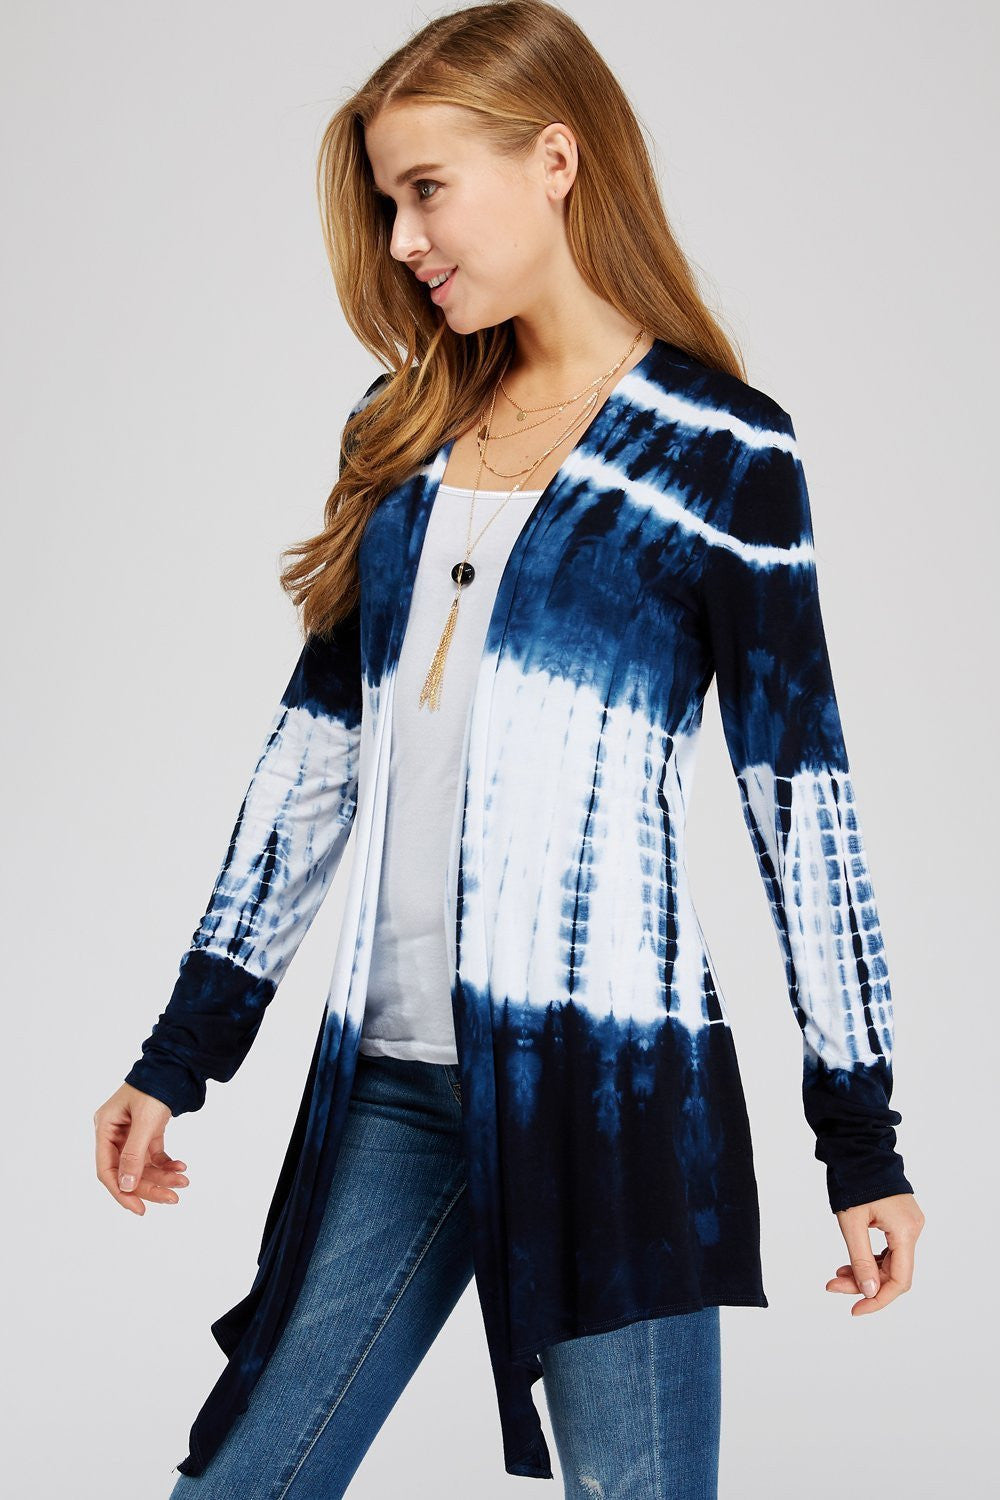 Wholesale Clothing, Online Wholesale Clothing, Women Clothing, Bohemian, Free People, tiedye, specialty wash, wholesale seller, wholesale women clothing shop, gypsy look, USA made, URBAN X APPAREL-CARDIGANS-UCR3160N, fashiontrend2019